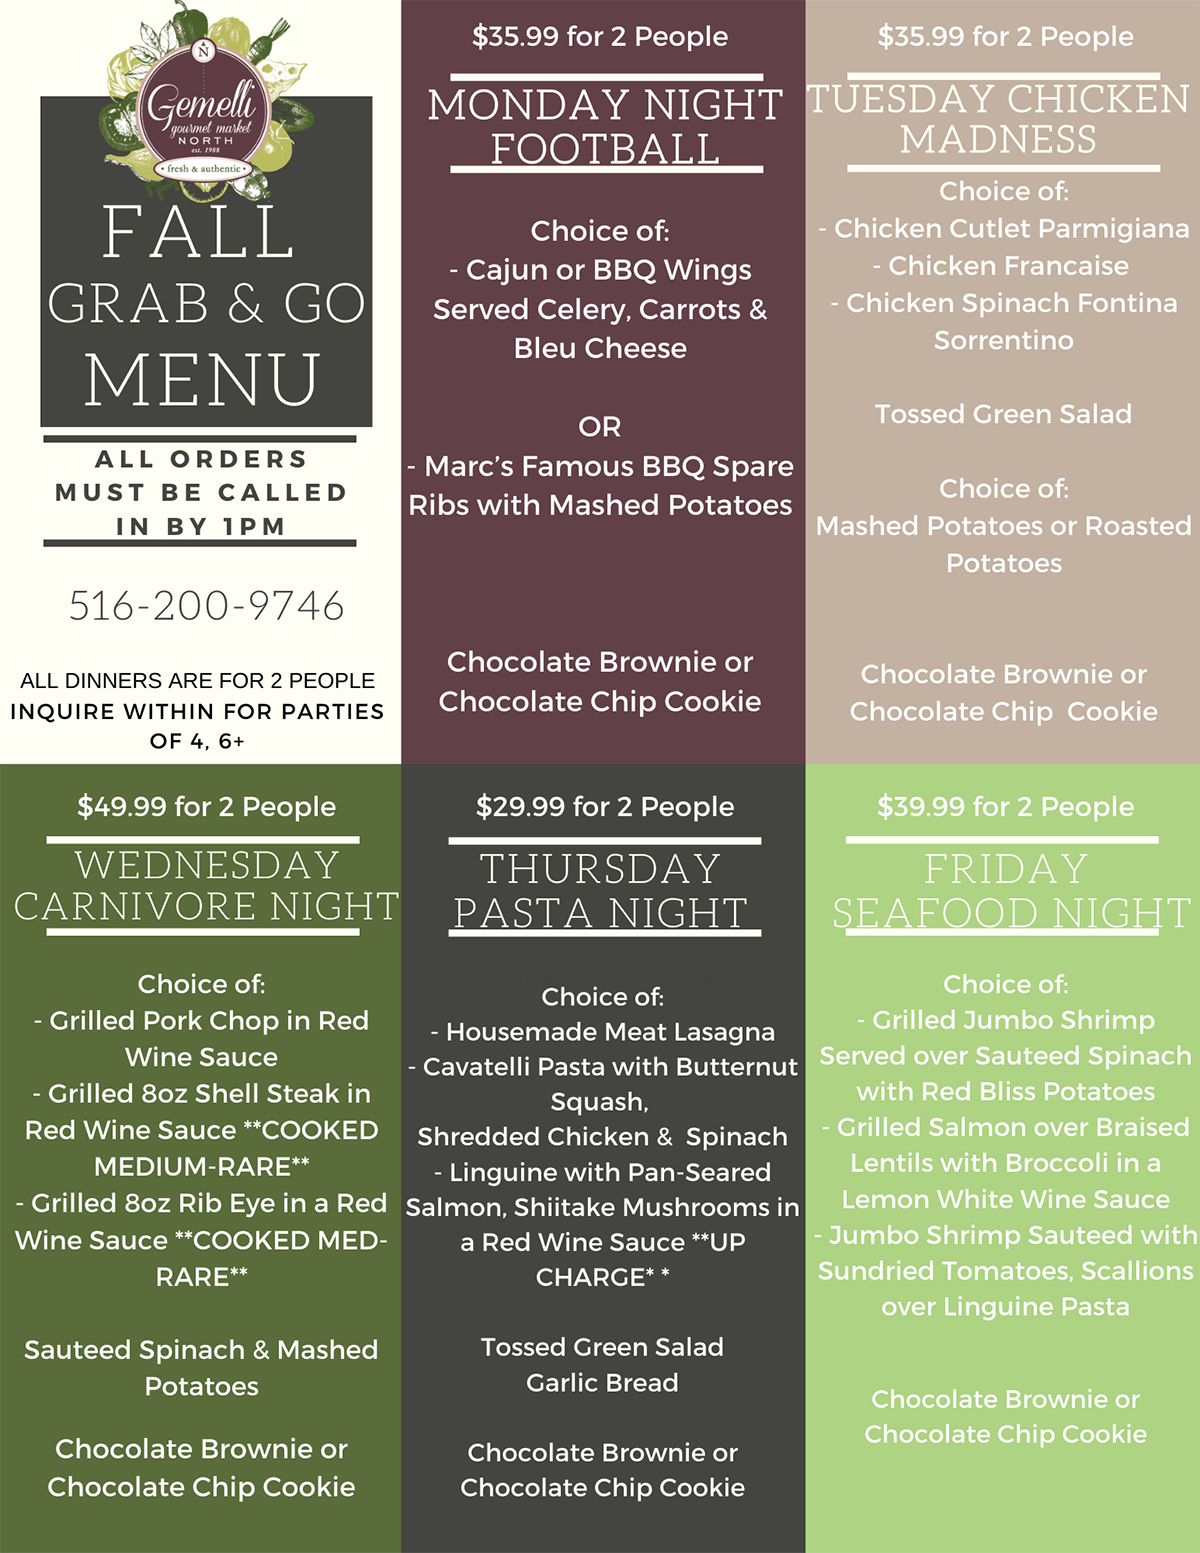 gemelli gourmet market fall grab and go menu all orders must be called in by 1pm 516-200-9746 all dinners are for 2 people inquire within for parties of 4, 6+ wednesday carnivore night choice of: -grilled pork chop in red wine sauce -grilled 8oz shell steak in red wine sauce **cooked medium-rare** -grilled 8oz rib eye in red wine sauce **cooked med-rare** sauteed spinach and mashed potatoes chocolate brownie or chocolate chip cookie $35.99 for 2 people monday night football choice of: -cajun or bbq wings served celery, carrots and blue cheese or -marc's famous bbq spare ribs with mashed potatoes chocolate brownie or chocolate chip cookie $29.99 for 2 people thursday pasta night choice of: -housemade meat lasagna - cavatelli pasta with butternut squash, shredded chicken and spinach -linguine with pan-seared salmon, shiitake muchrooms in a red wine sauce **up charge** tossed green salad garlic bread chocolate brownie or chocolate chip cookie $35.99 for 2 people tuesday chicken madness choice of: -chicken cutlet parmigiana -chicken francaise -chicken spanich fontina sorrentino tossed green salad choice of: mashed potatoes or roasted potatoes chocolate brownie or chocolate chip cookie $39.99 for 2 people friday seafood night choice of: -grilled jumbo shrimp served over sauteed spinach with red bliss potatoes -grilled salmon over braised lentils with broccoli in a lemon white wine sauce -jumbo shrimp sauteed with sundried tomatoes, scallions over linguine pasta chocolate brownie or chocolate chip cookie